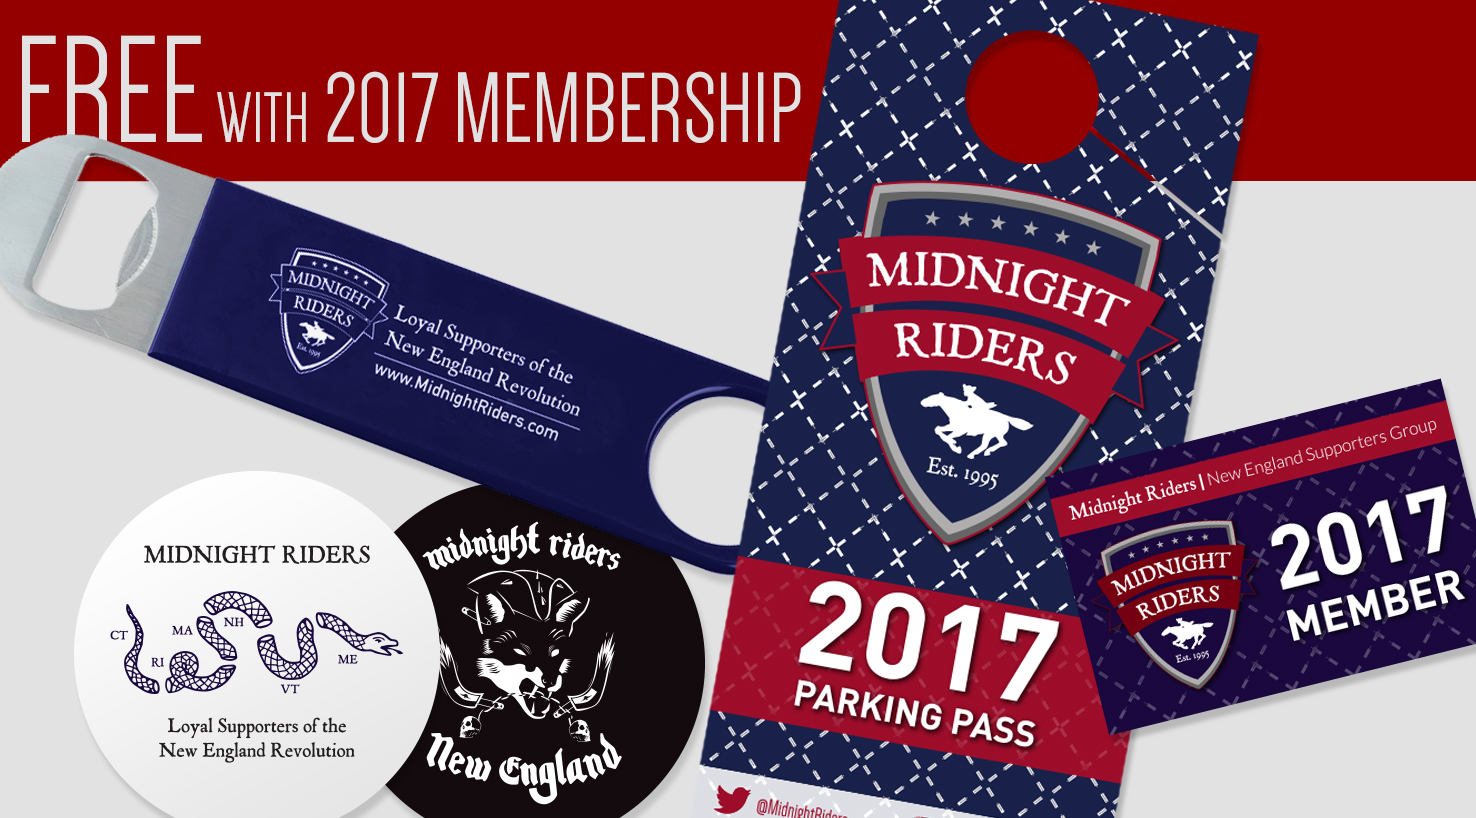 Free with 2017 Midnight Riders Membership